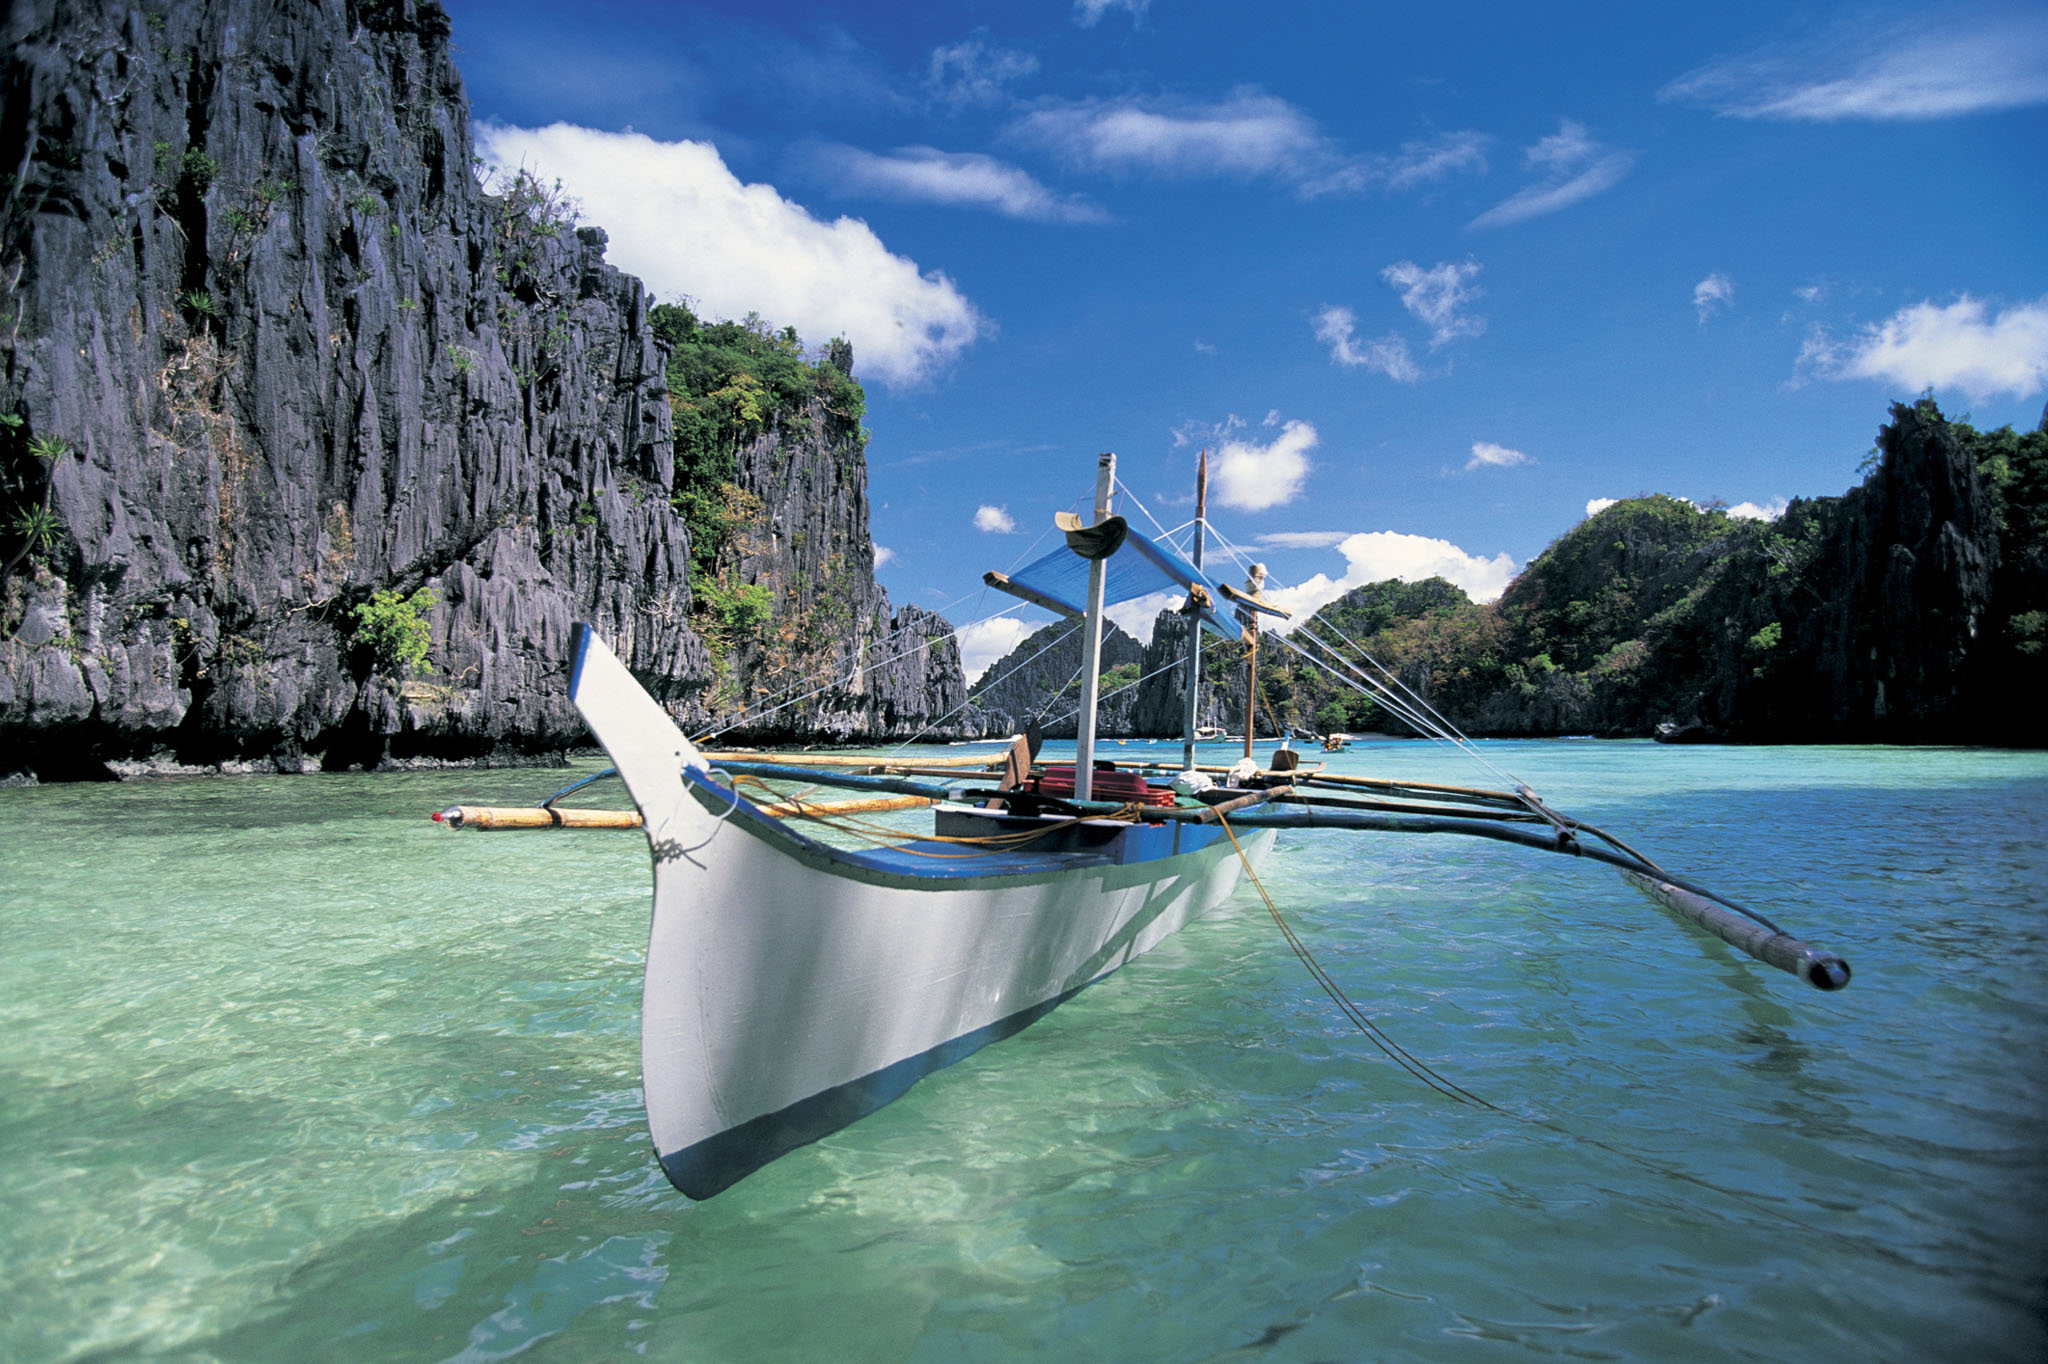 Philippines, Palawan Island, Bacuit Archipelago, boat in cove